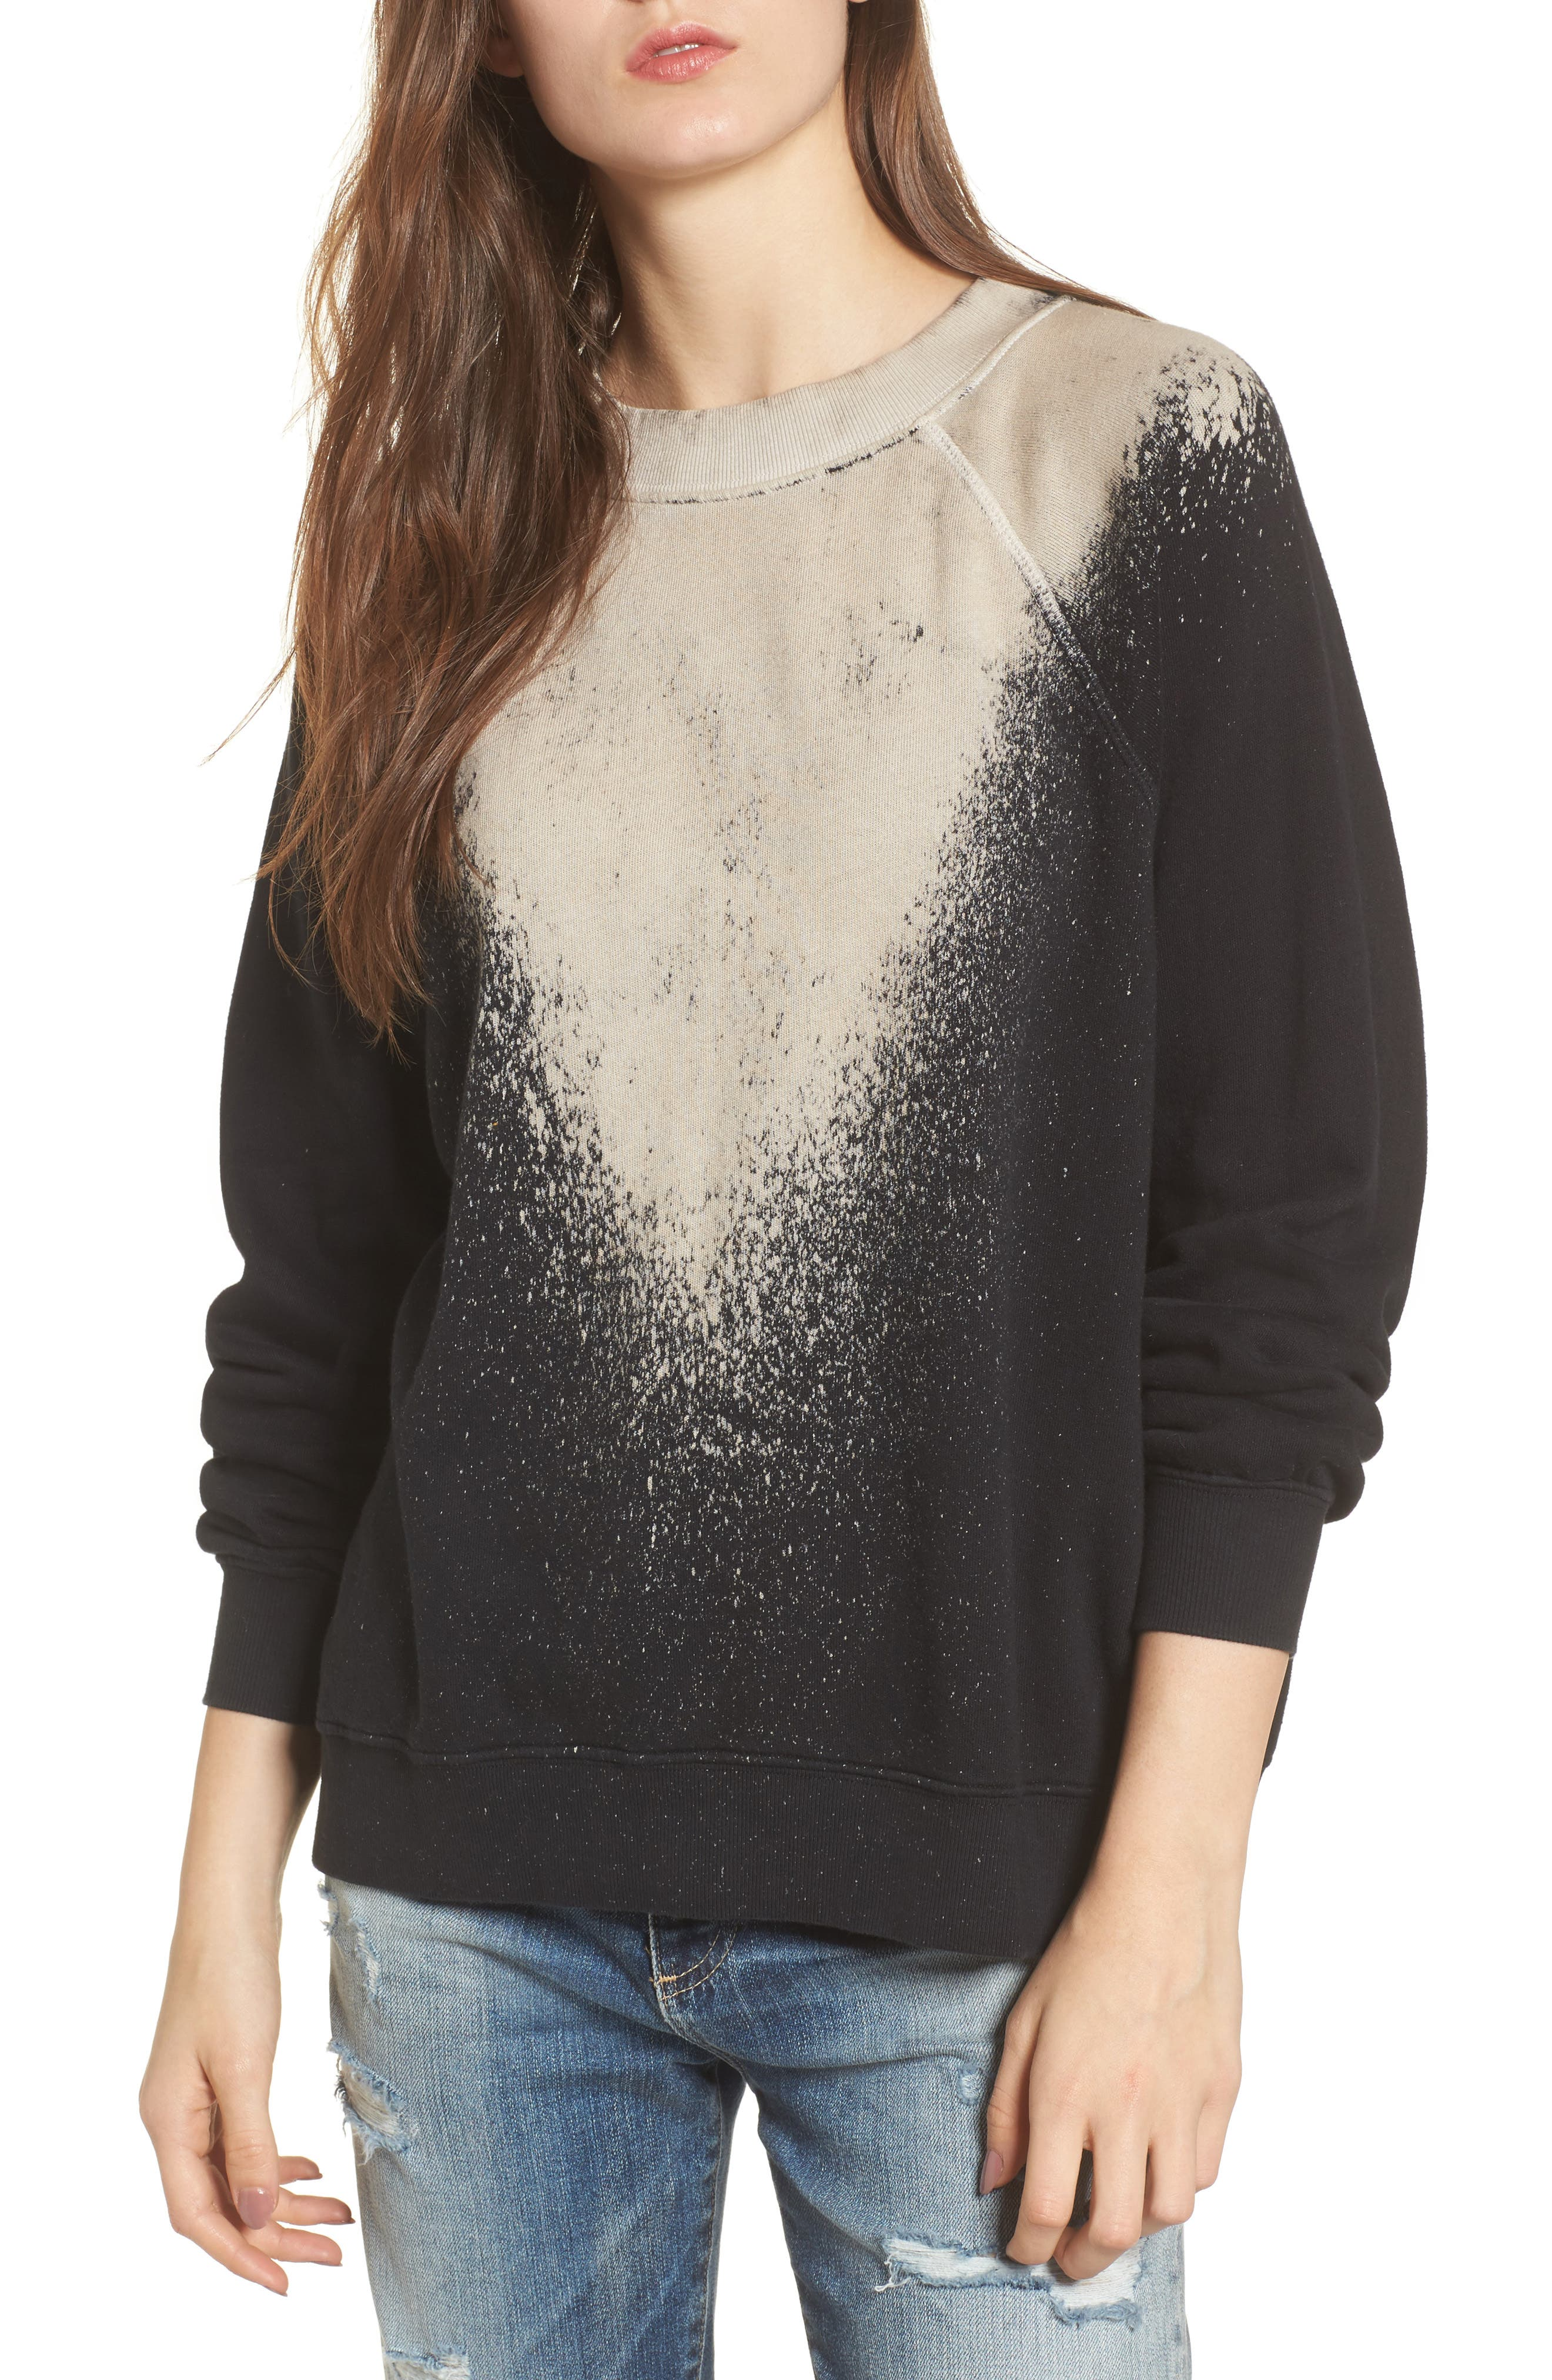 Stardust - Sommers Sweatshirt,                             Main thumbnail 1, color,                             Stardust Wash